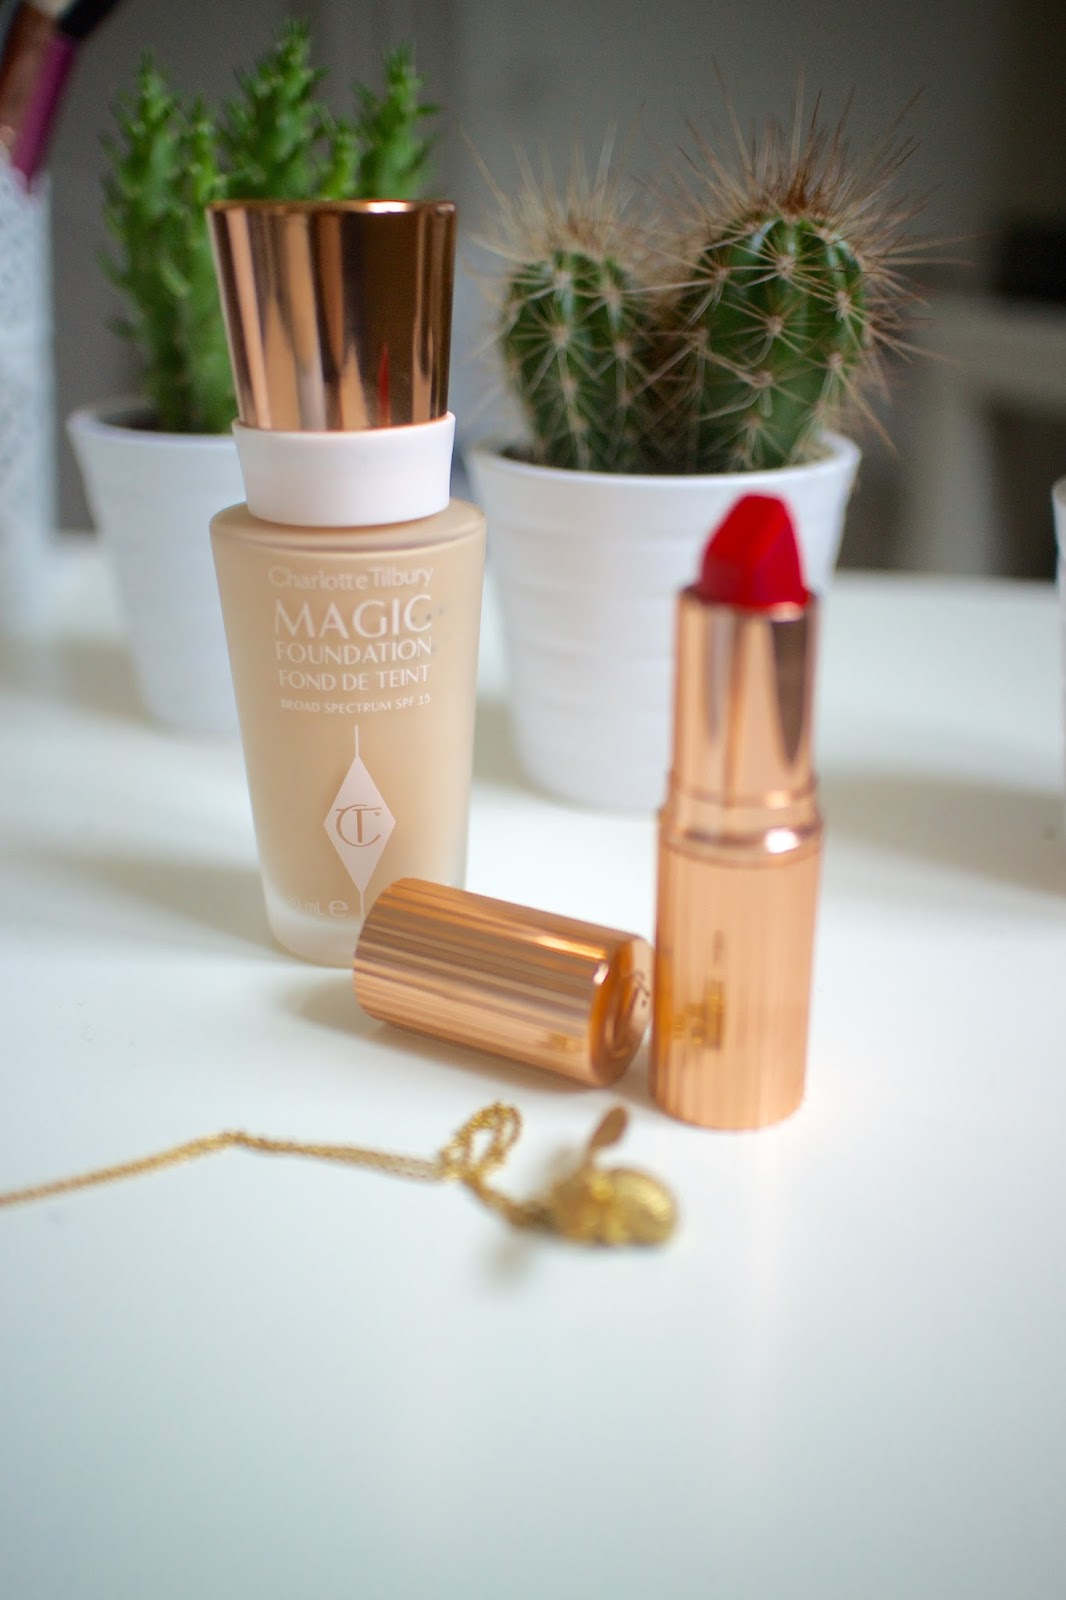 She's So Lucy Charlotte Tilbury Magic Foundation Review Oily Blemish Acne